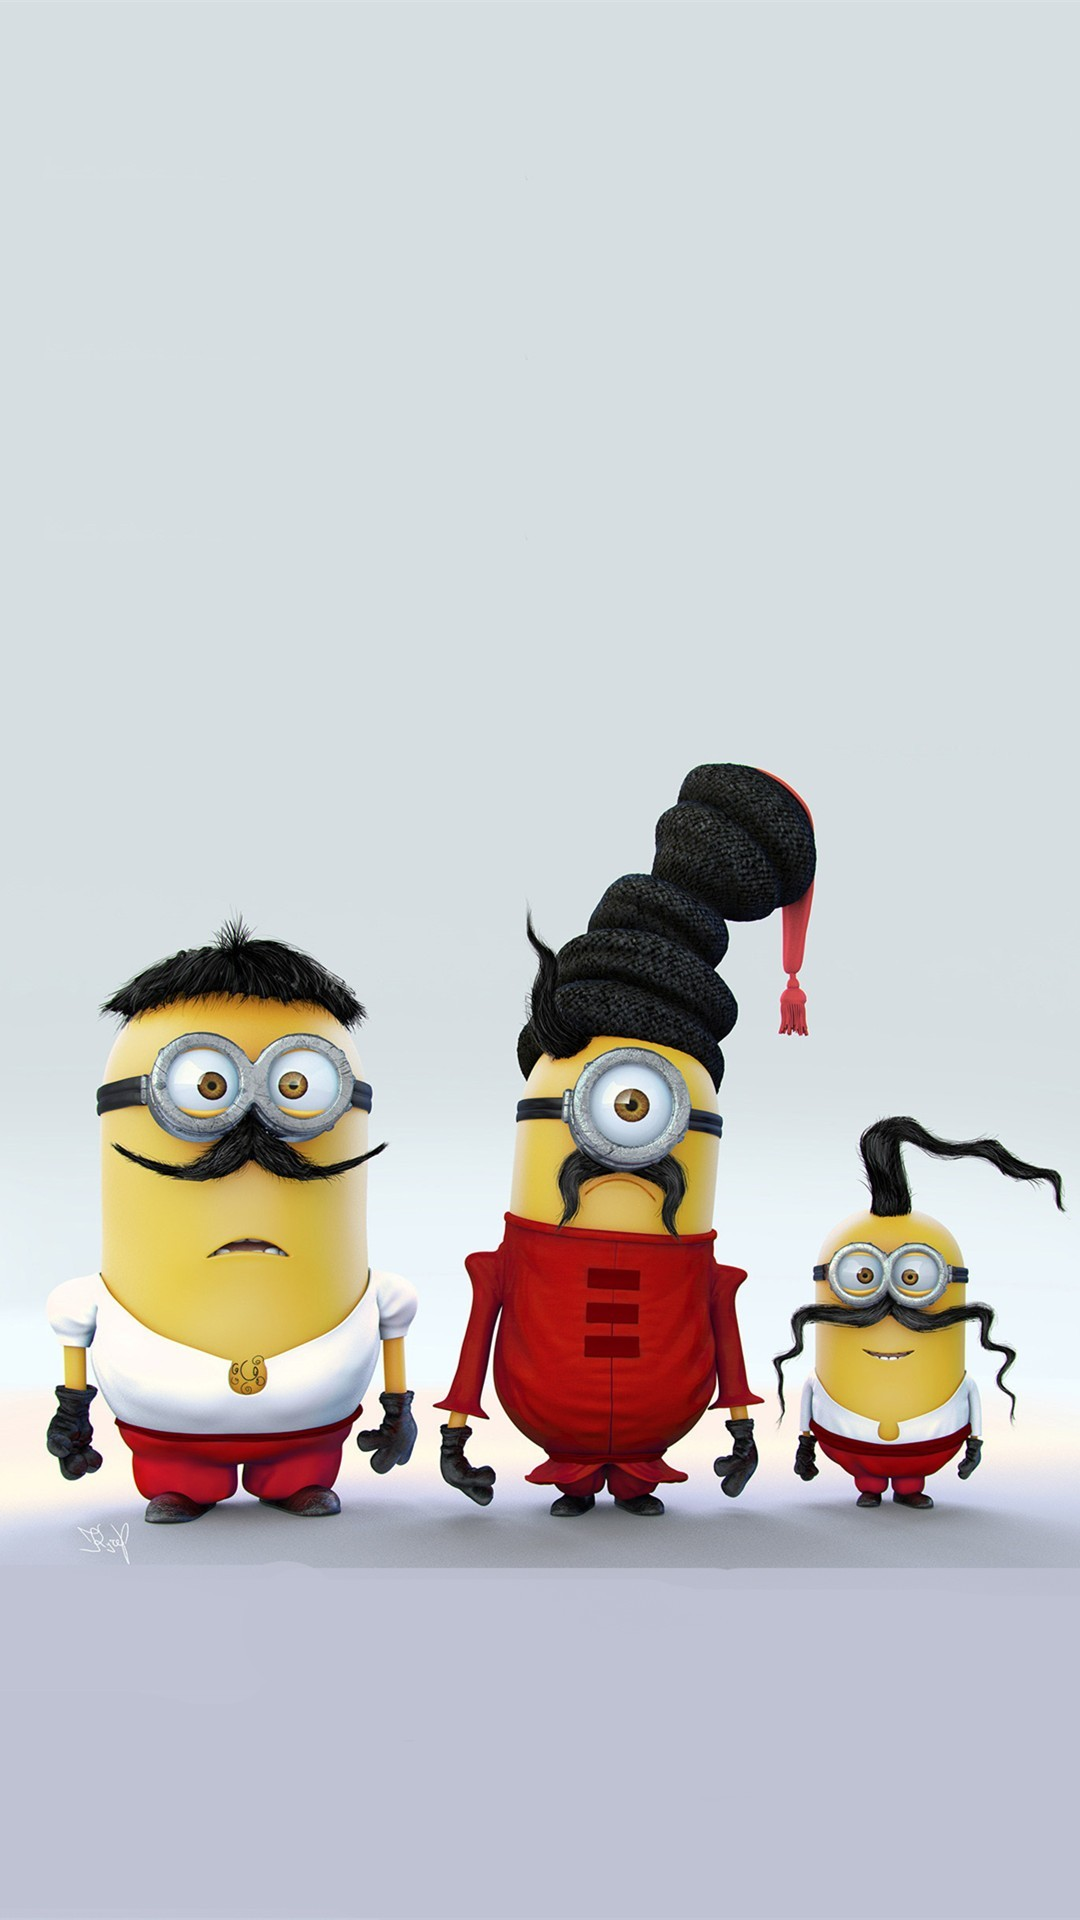 Cute Couple Wallpapers For Mobile Phones Minions Cell Phone Wallpaper 77 Images